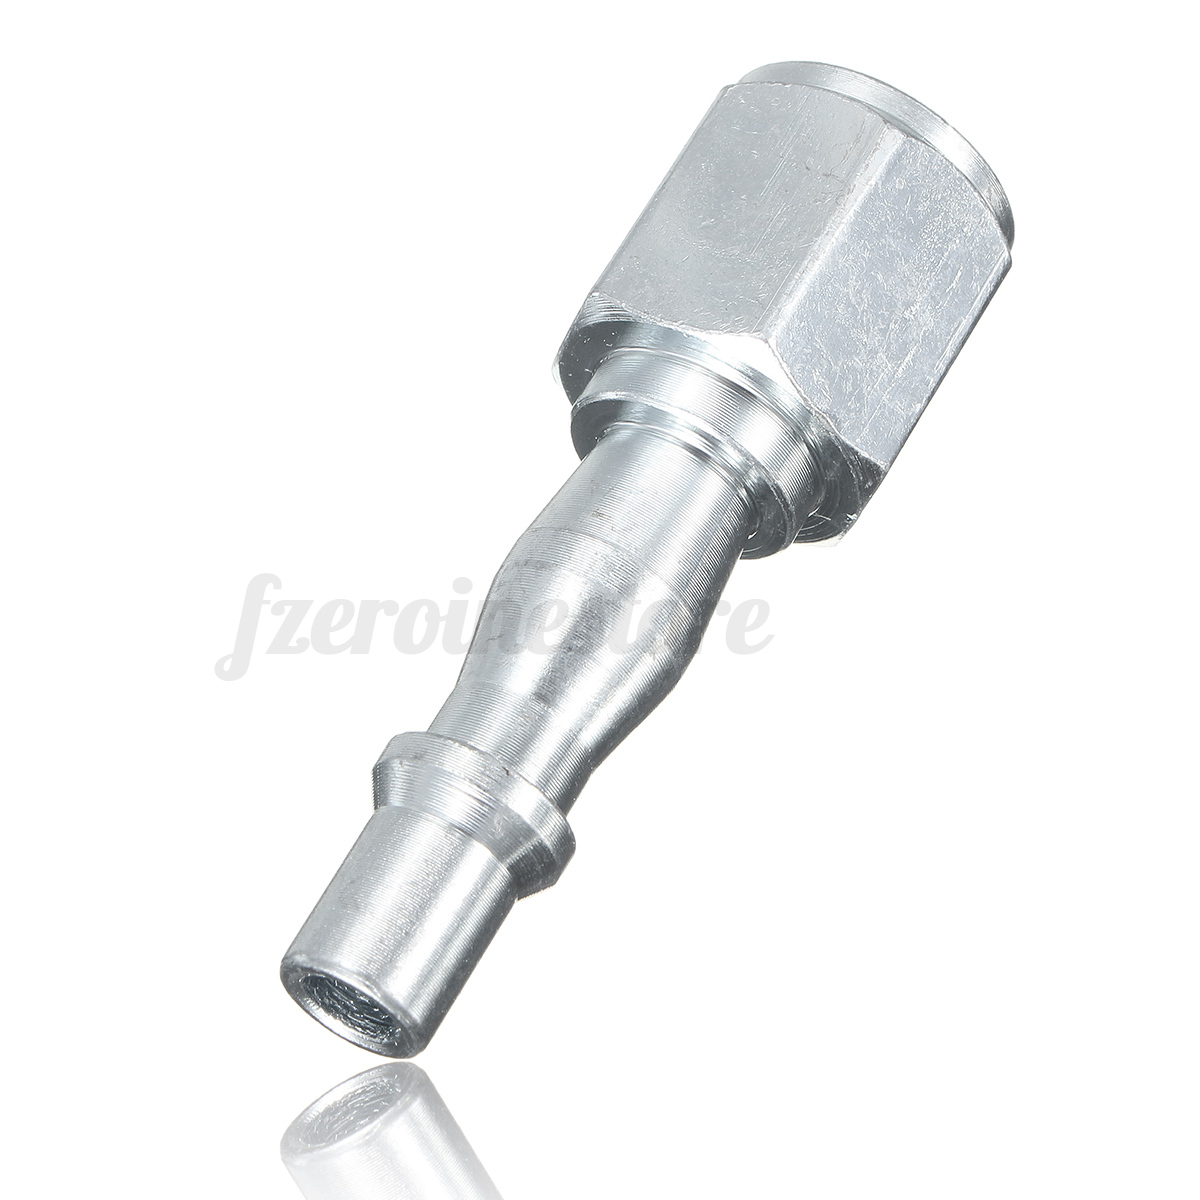 Air Hose Fittings : Air line hose fittings compressor connectors male female